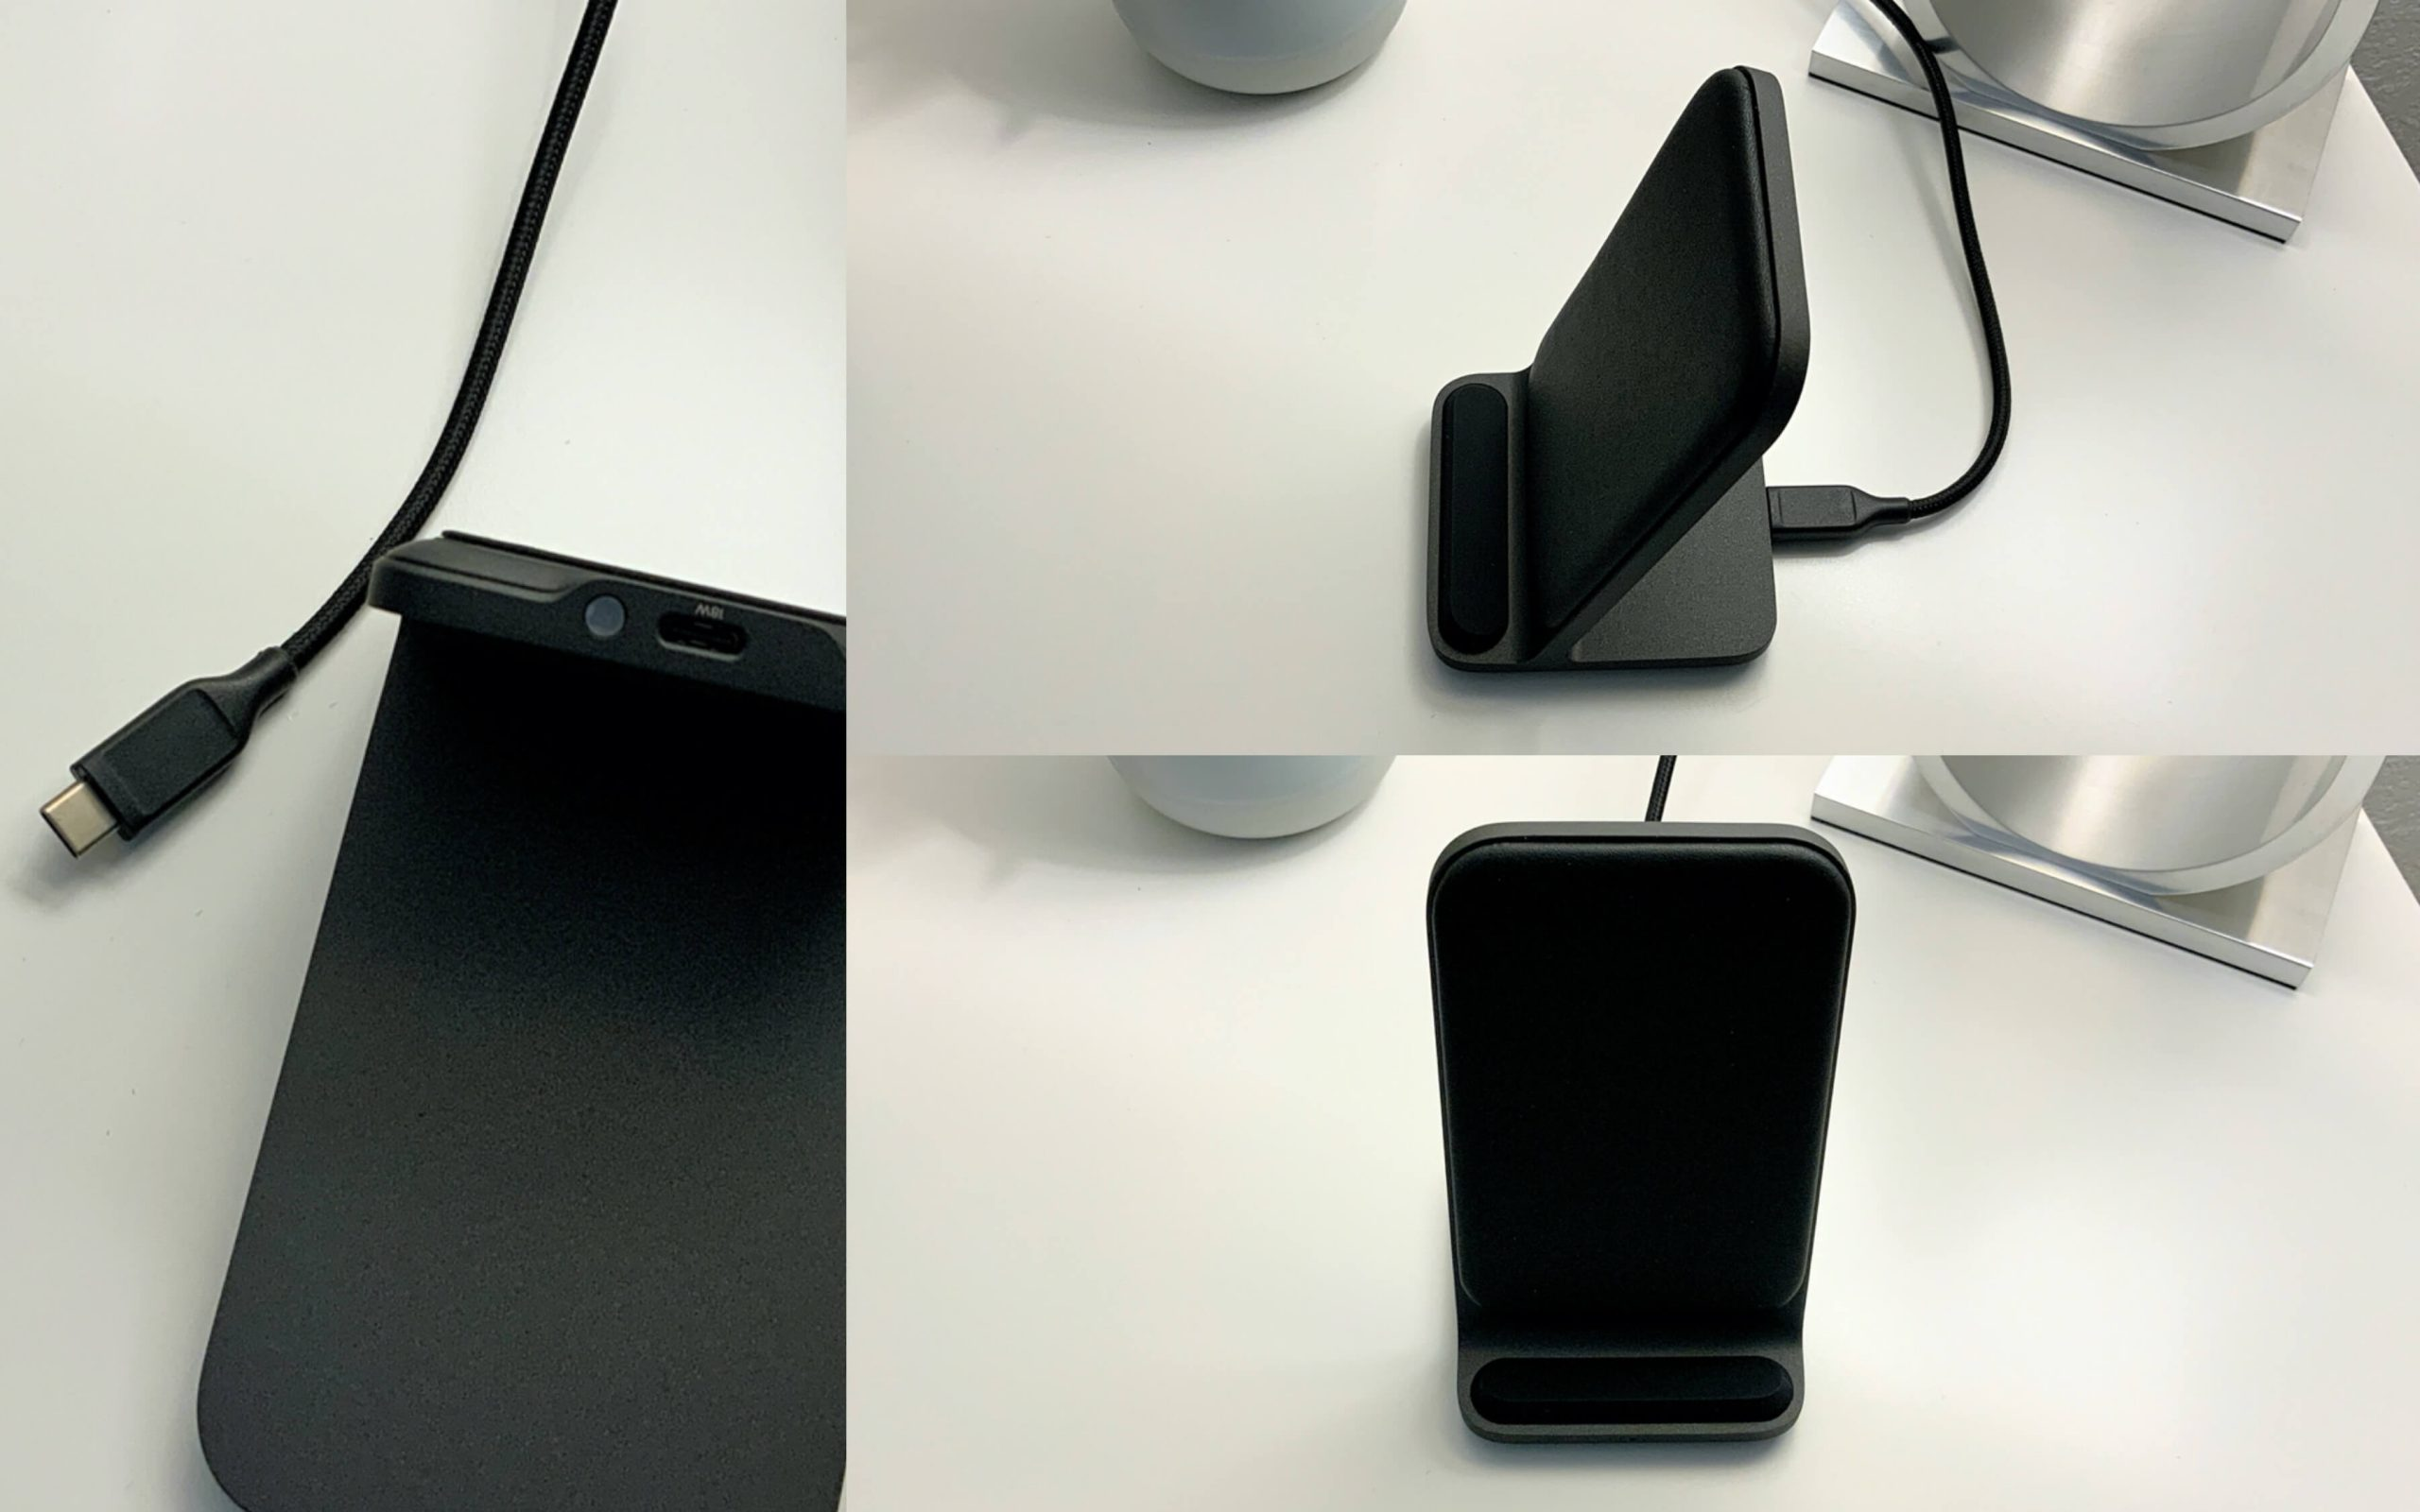 Nomad_Base_Station_Stand_iPhone_AirPods1-scaled Base Station Stand von Nomad - das iPhone drahtlos und elegant aufladen